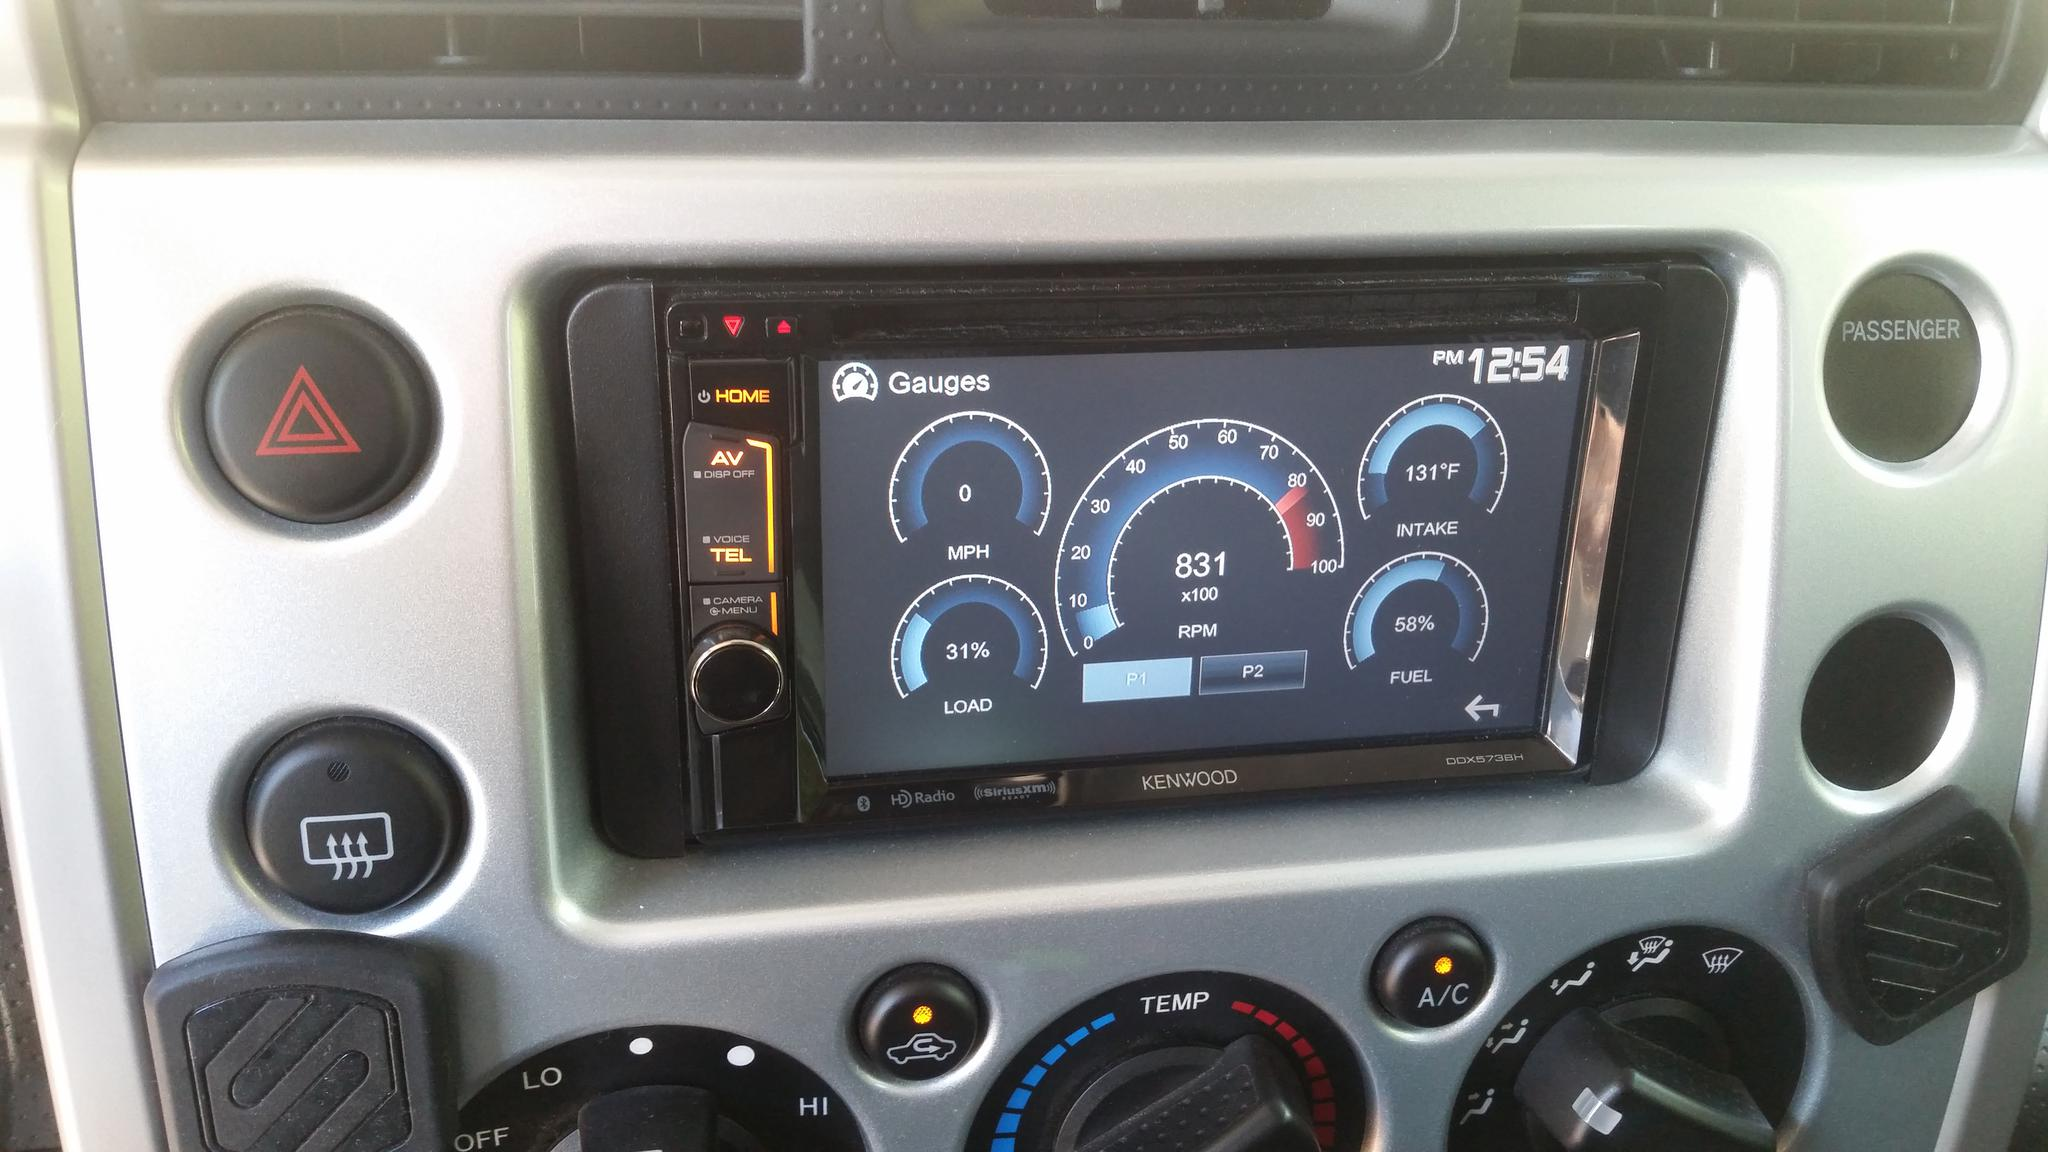 2016 Fj Cruiser >> Great upgrade to 2014 TTUE Stereo Head Unit - Toyota FJ Cruiser Forum